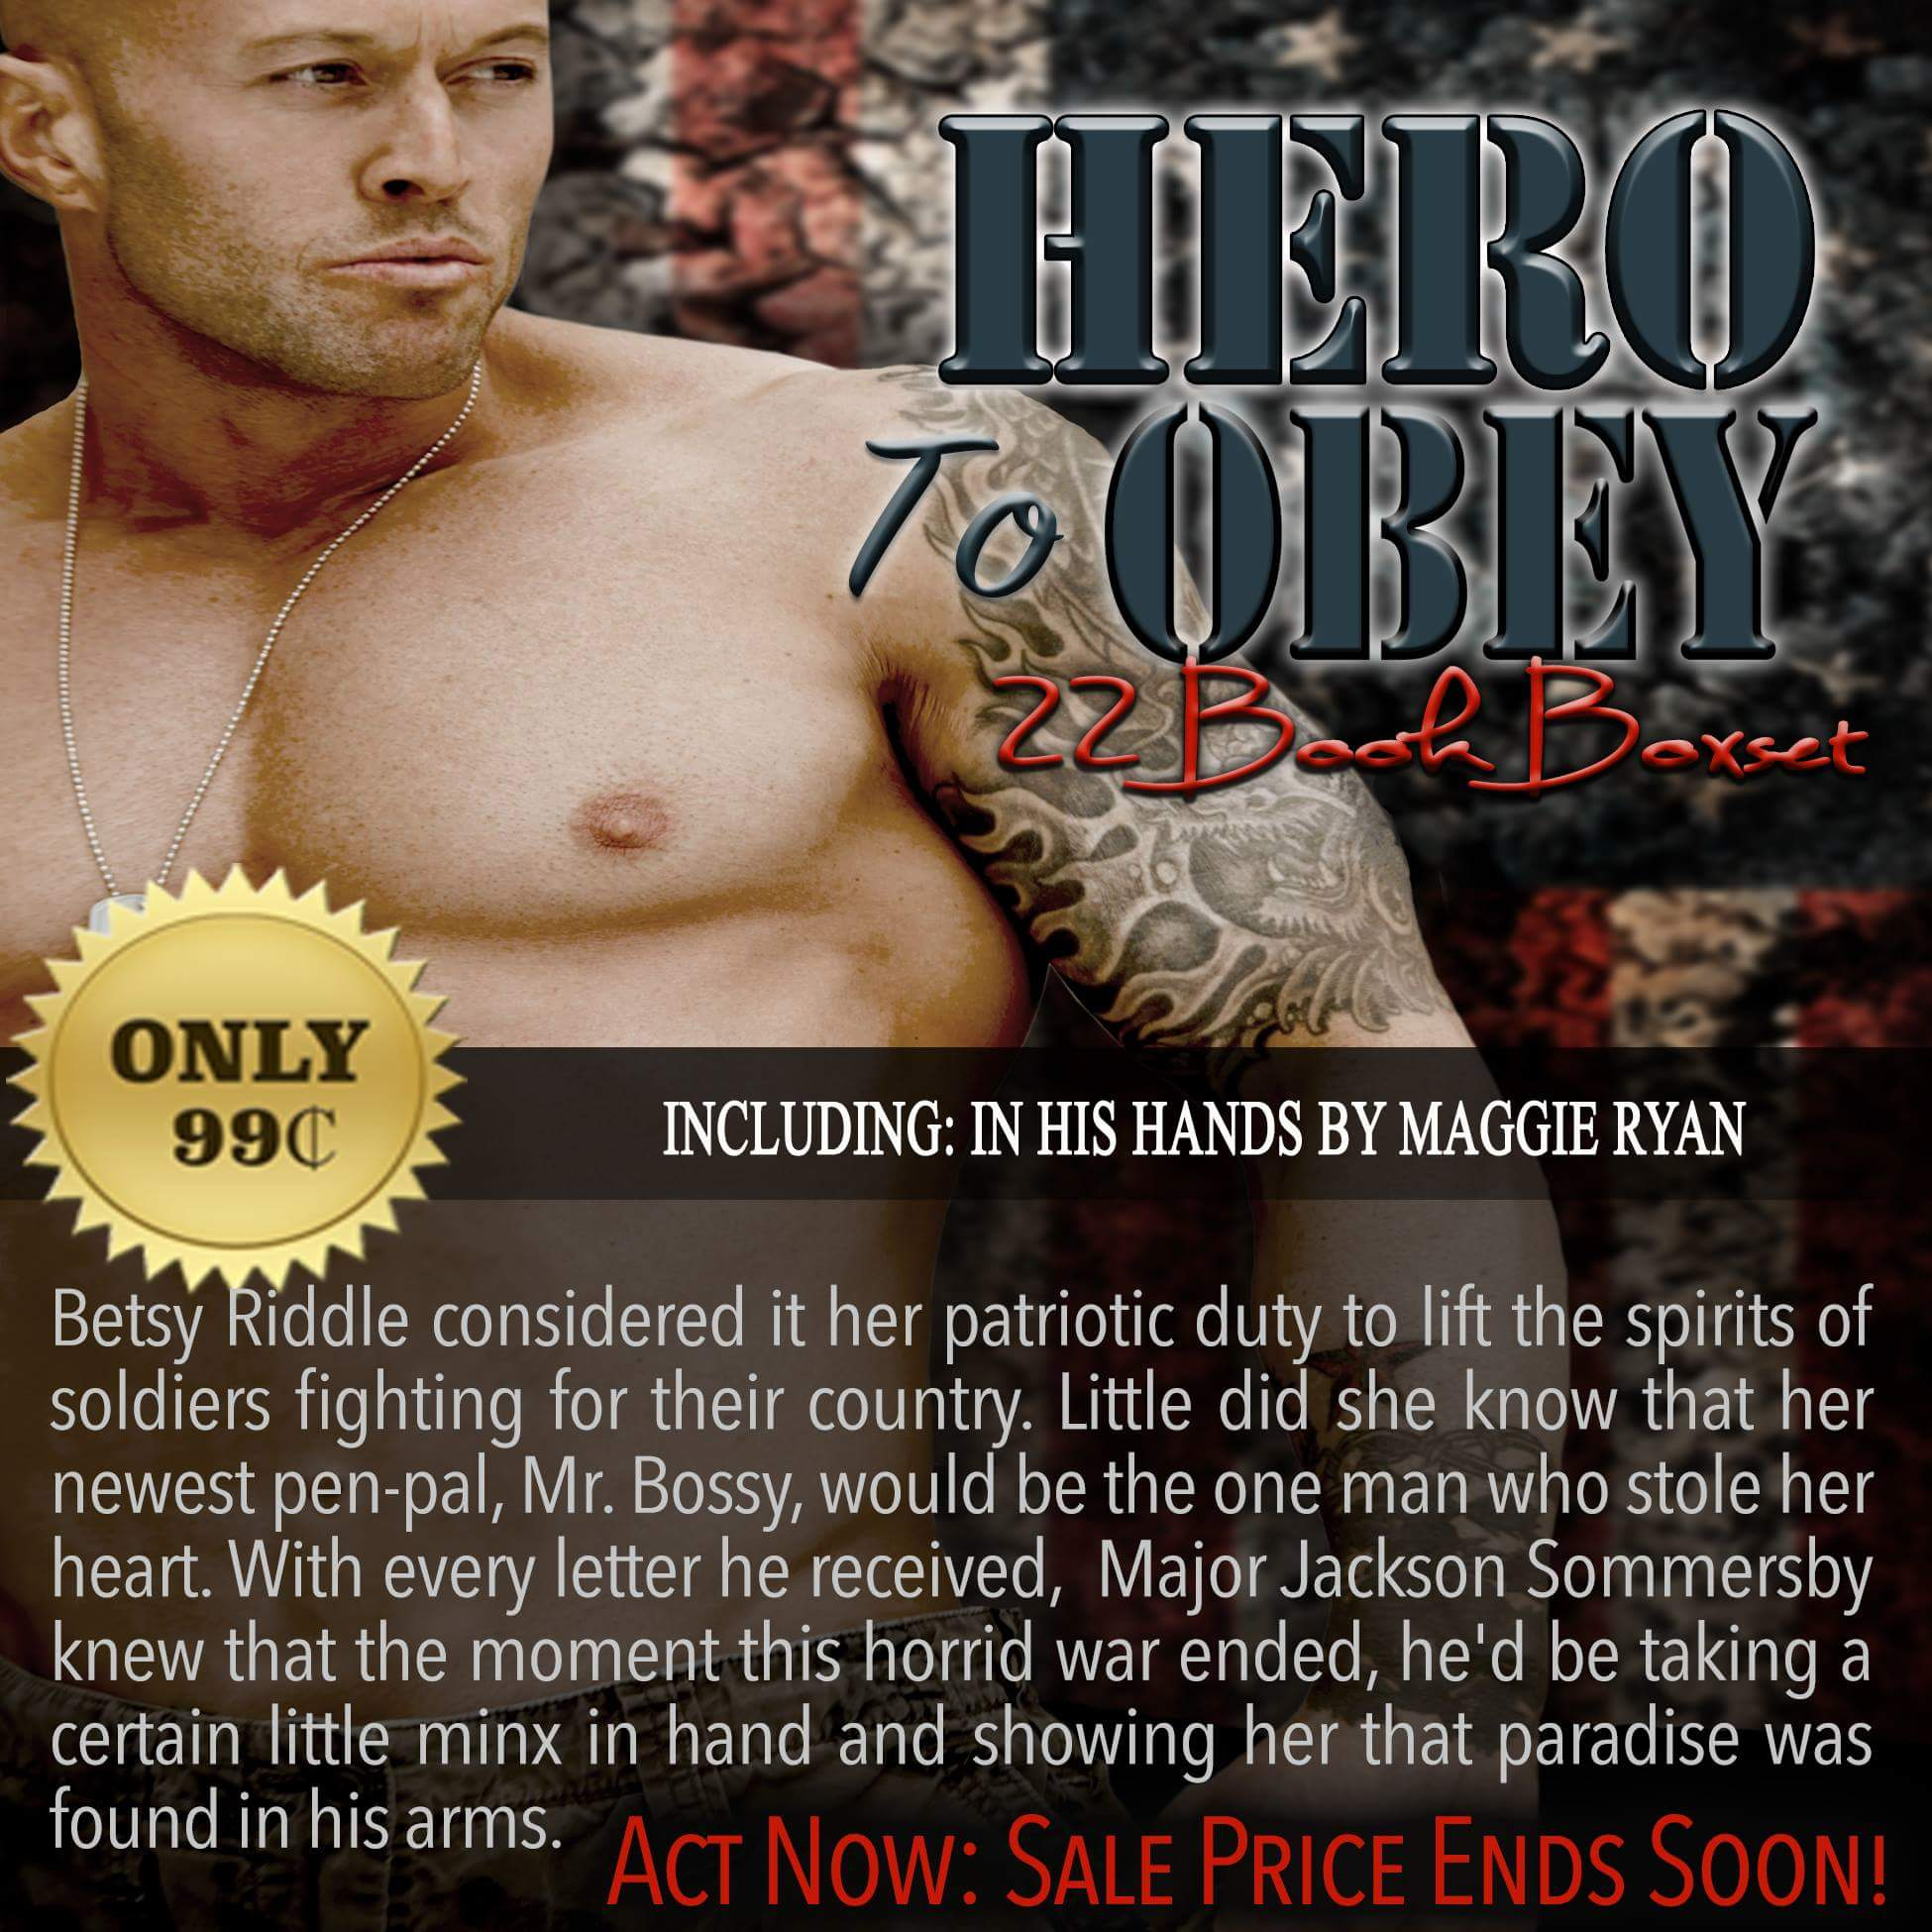 Hero To Obey Book Cover Model Actor John Joseph Quinlan by Maggie Ryan #JohnQuinlan #Hero2obey